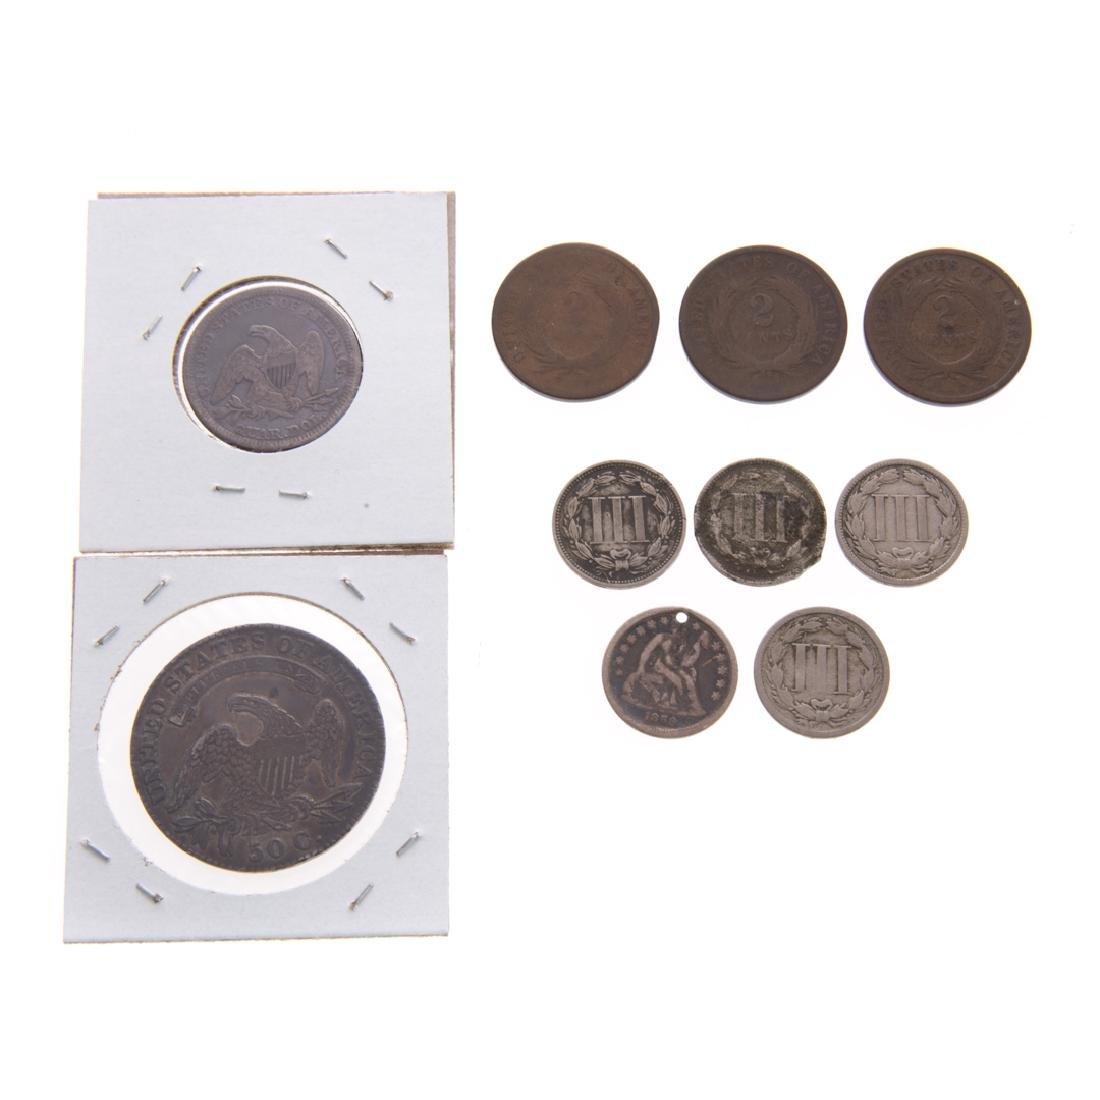 [US] 19th Century US Coins - 2